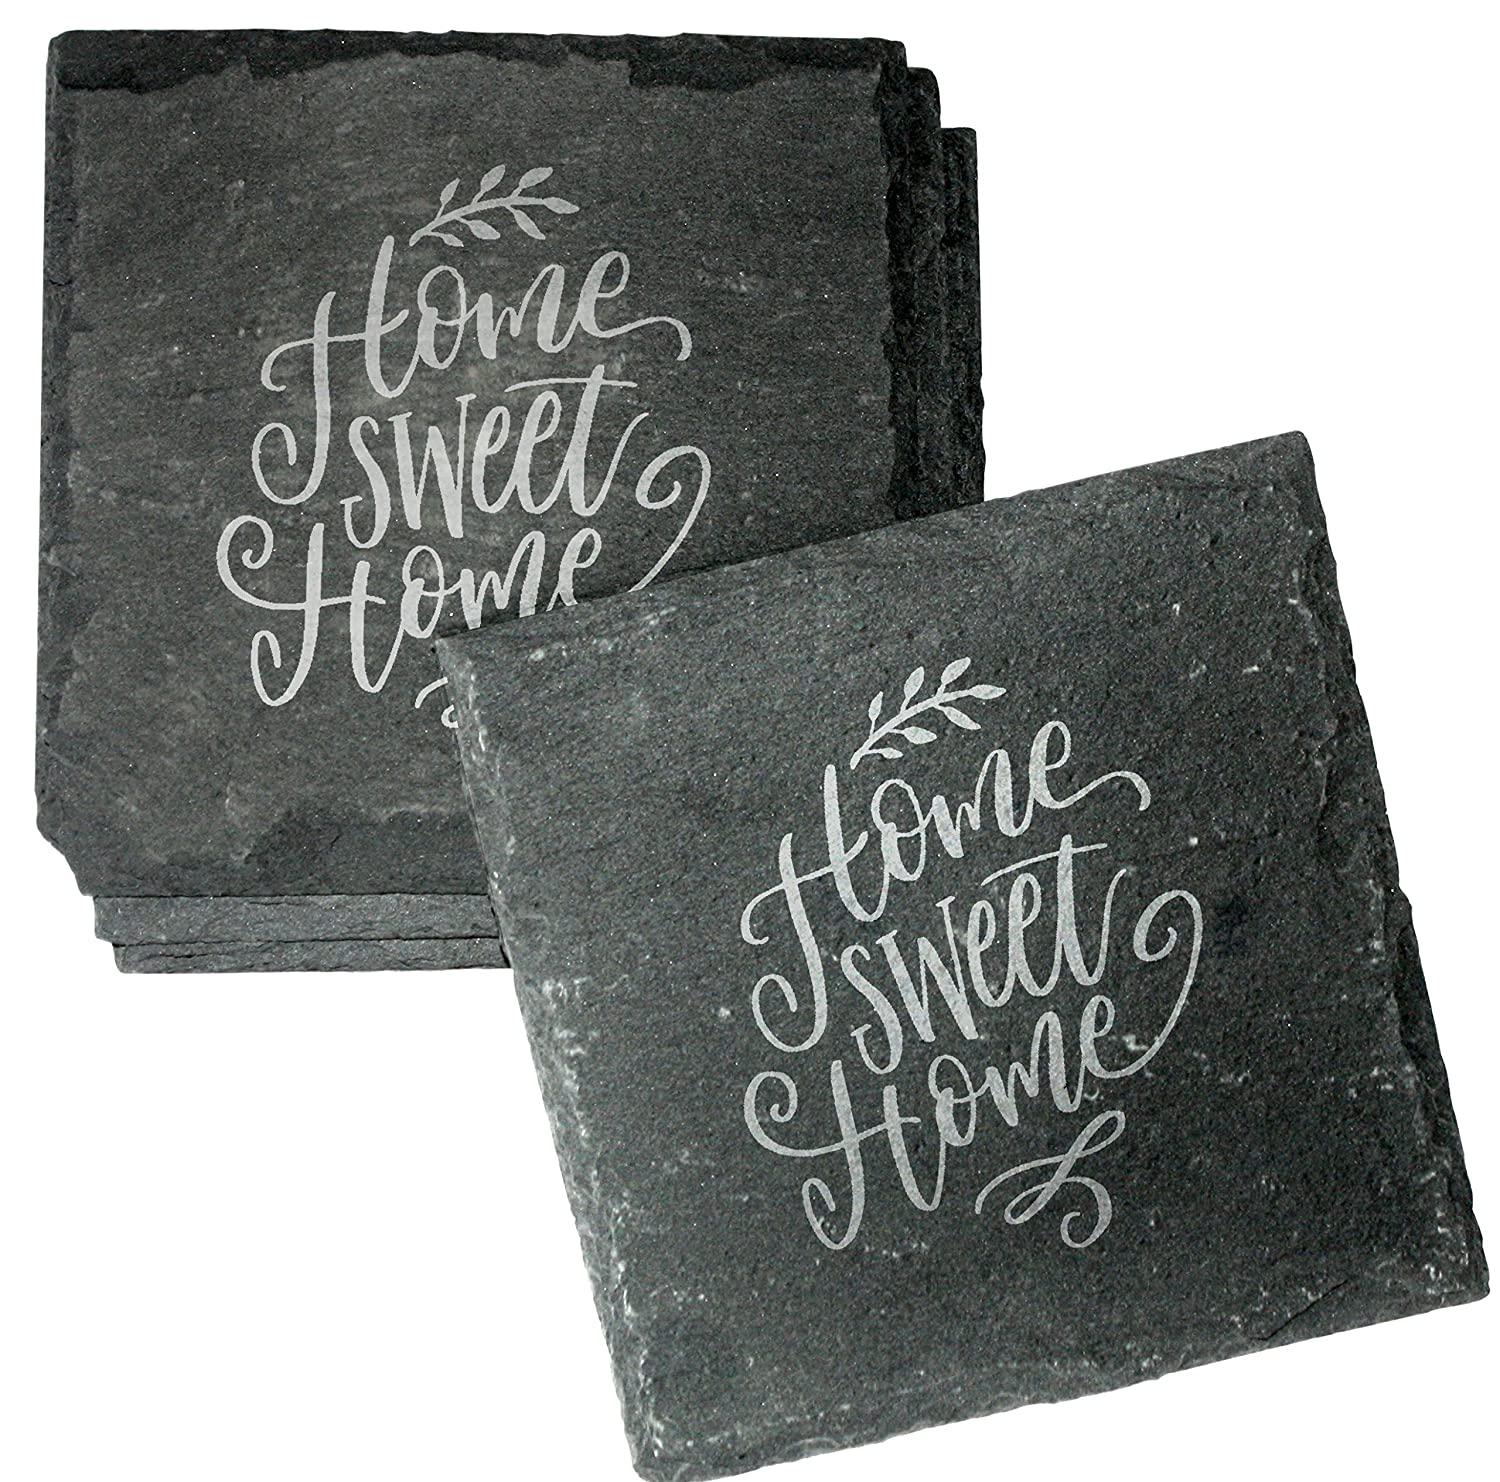 Housewarming Gift Etched Slate Coasters Set of 4 - Home Sweet Home Absorbent Drink Coasters - CSL46